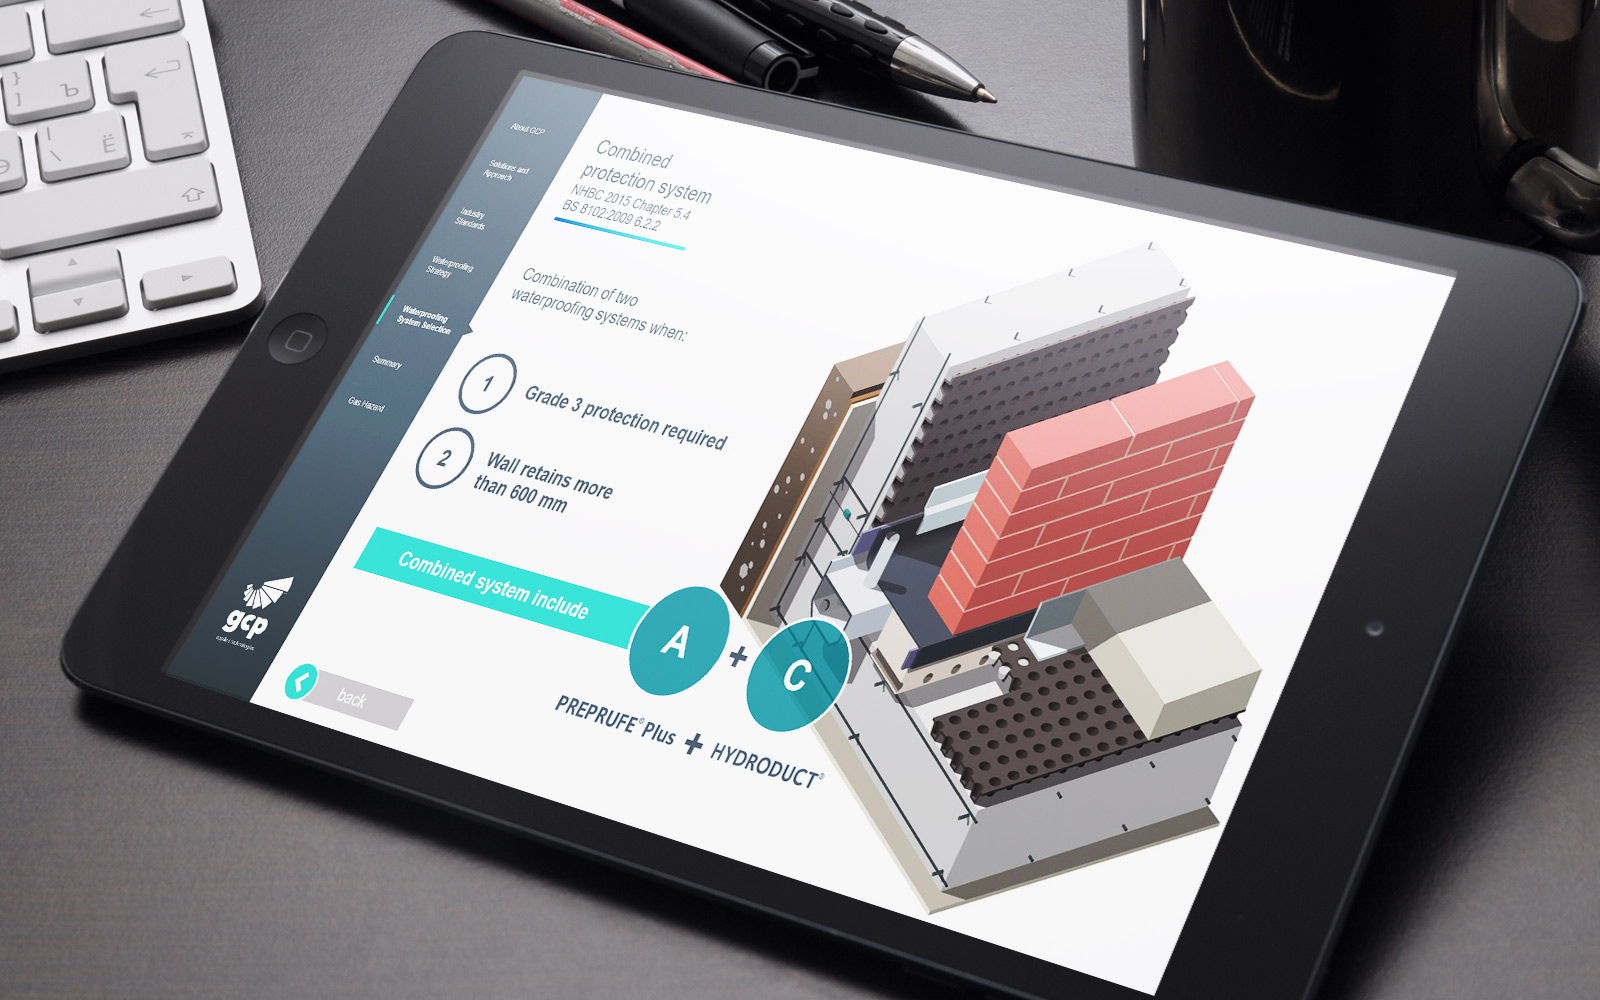 Black iPad displaying GCP interactive touchscreen sales enablement tool showing illustration of building materials in use